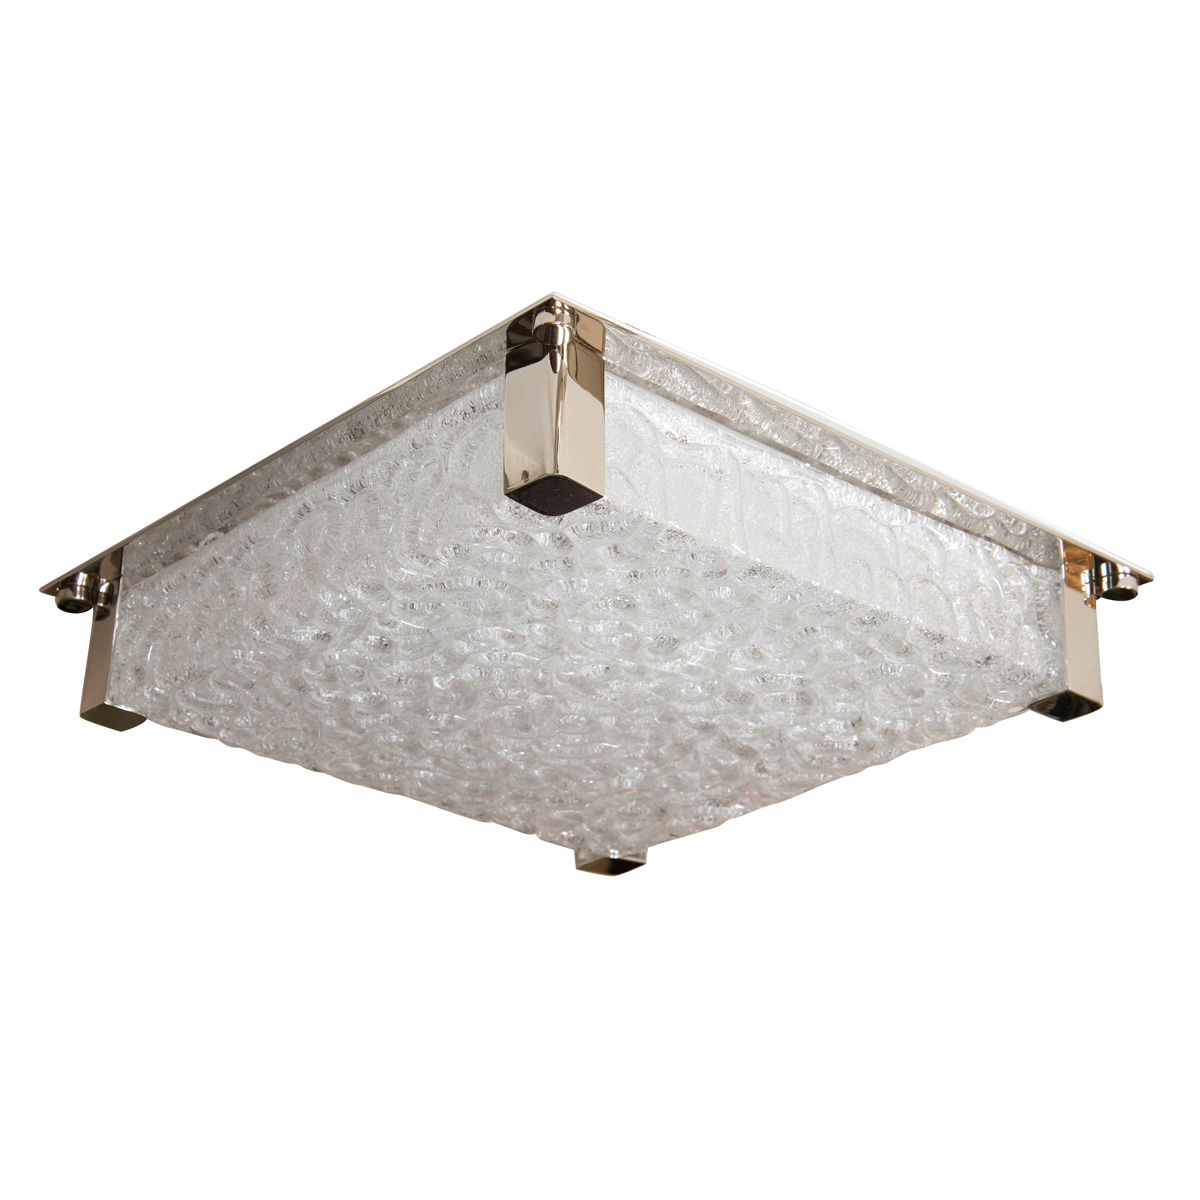 flush ceiling led mount uk light squareathroom spa square fixtures lights bathroom lighting